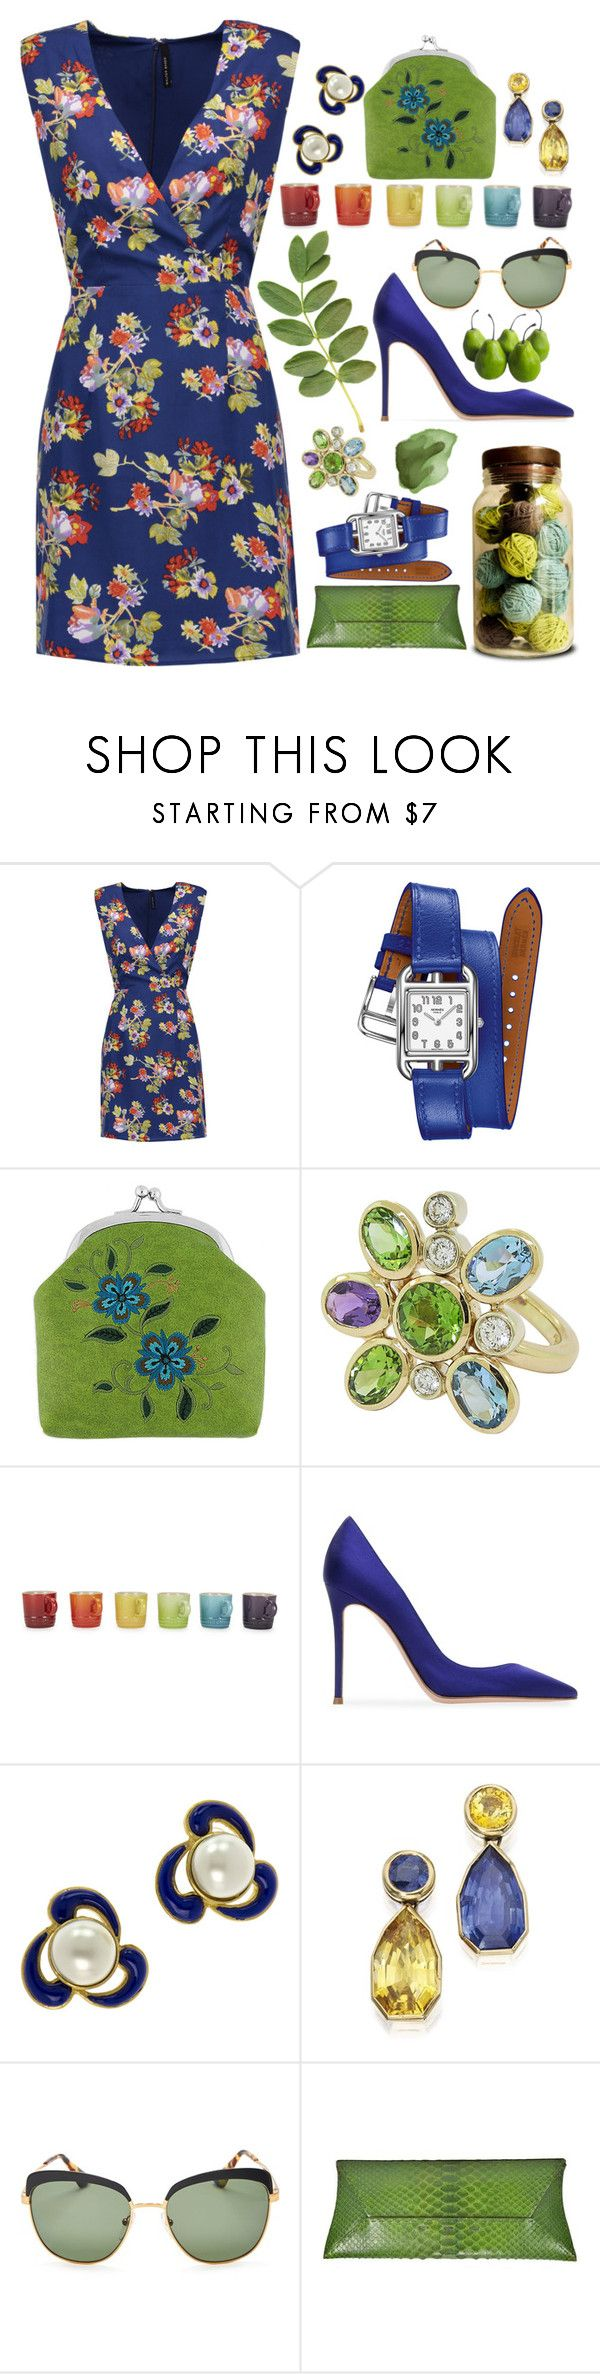 """""""Colorful"""" by sunnydays4everkh ❤ liked on Polyvore featuring W118 by Walter Baker, Hermès, Lavishy, Le Creuset, Gianvito Rossi, Chanel, Prada and VBH"""